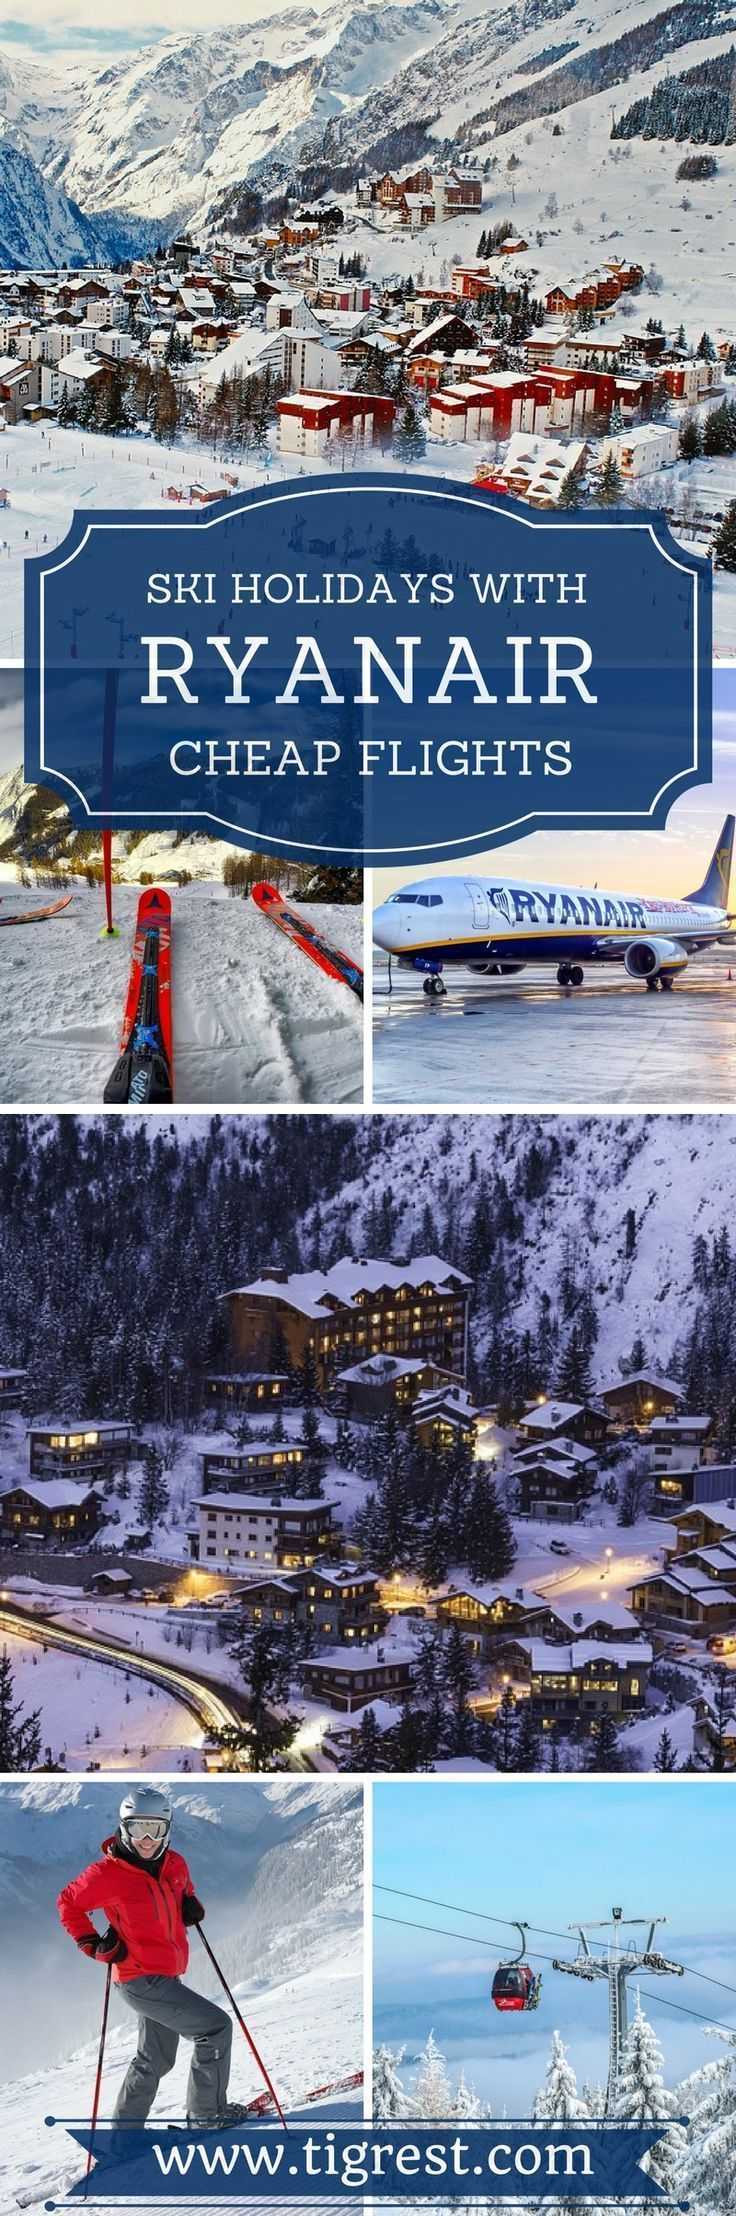 Cheap SKI holidays with Ryanair - how to plan ski holiday with low cost airline, best destinations and resorts, prices and tips #lowcostflights